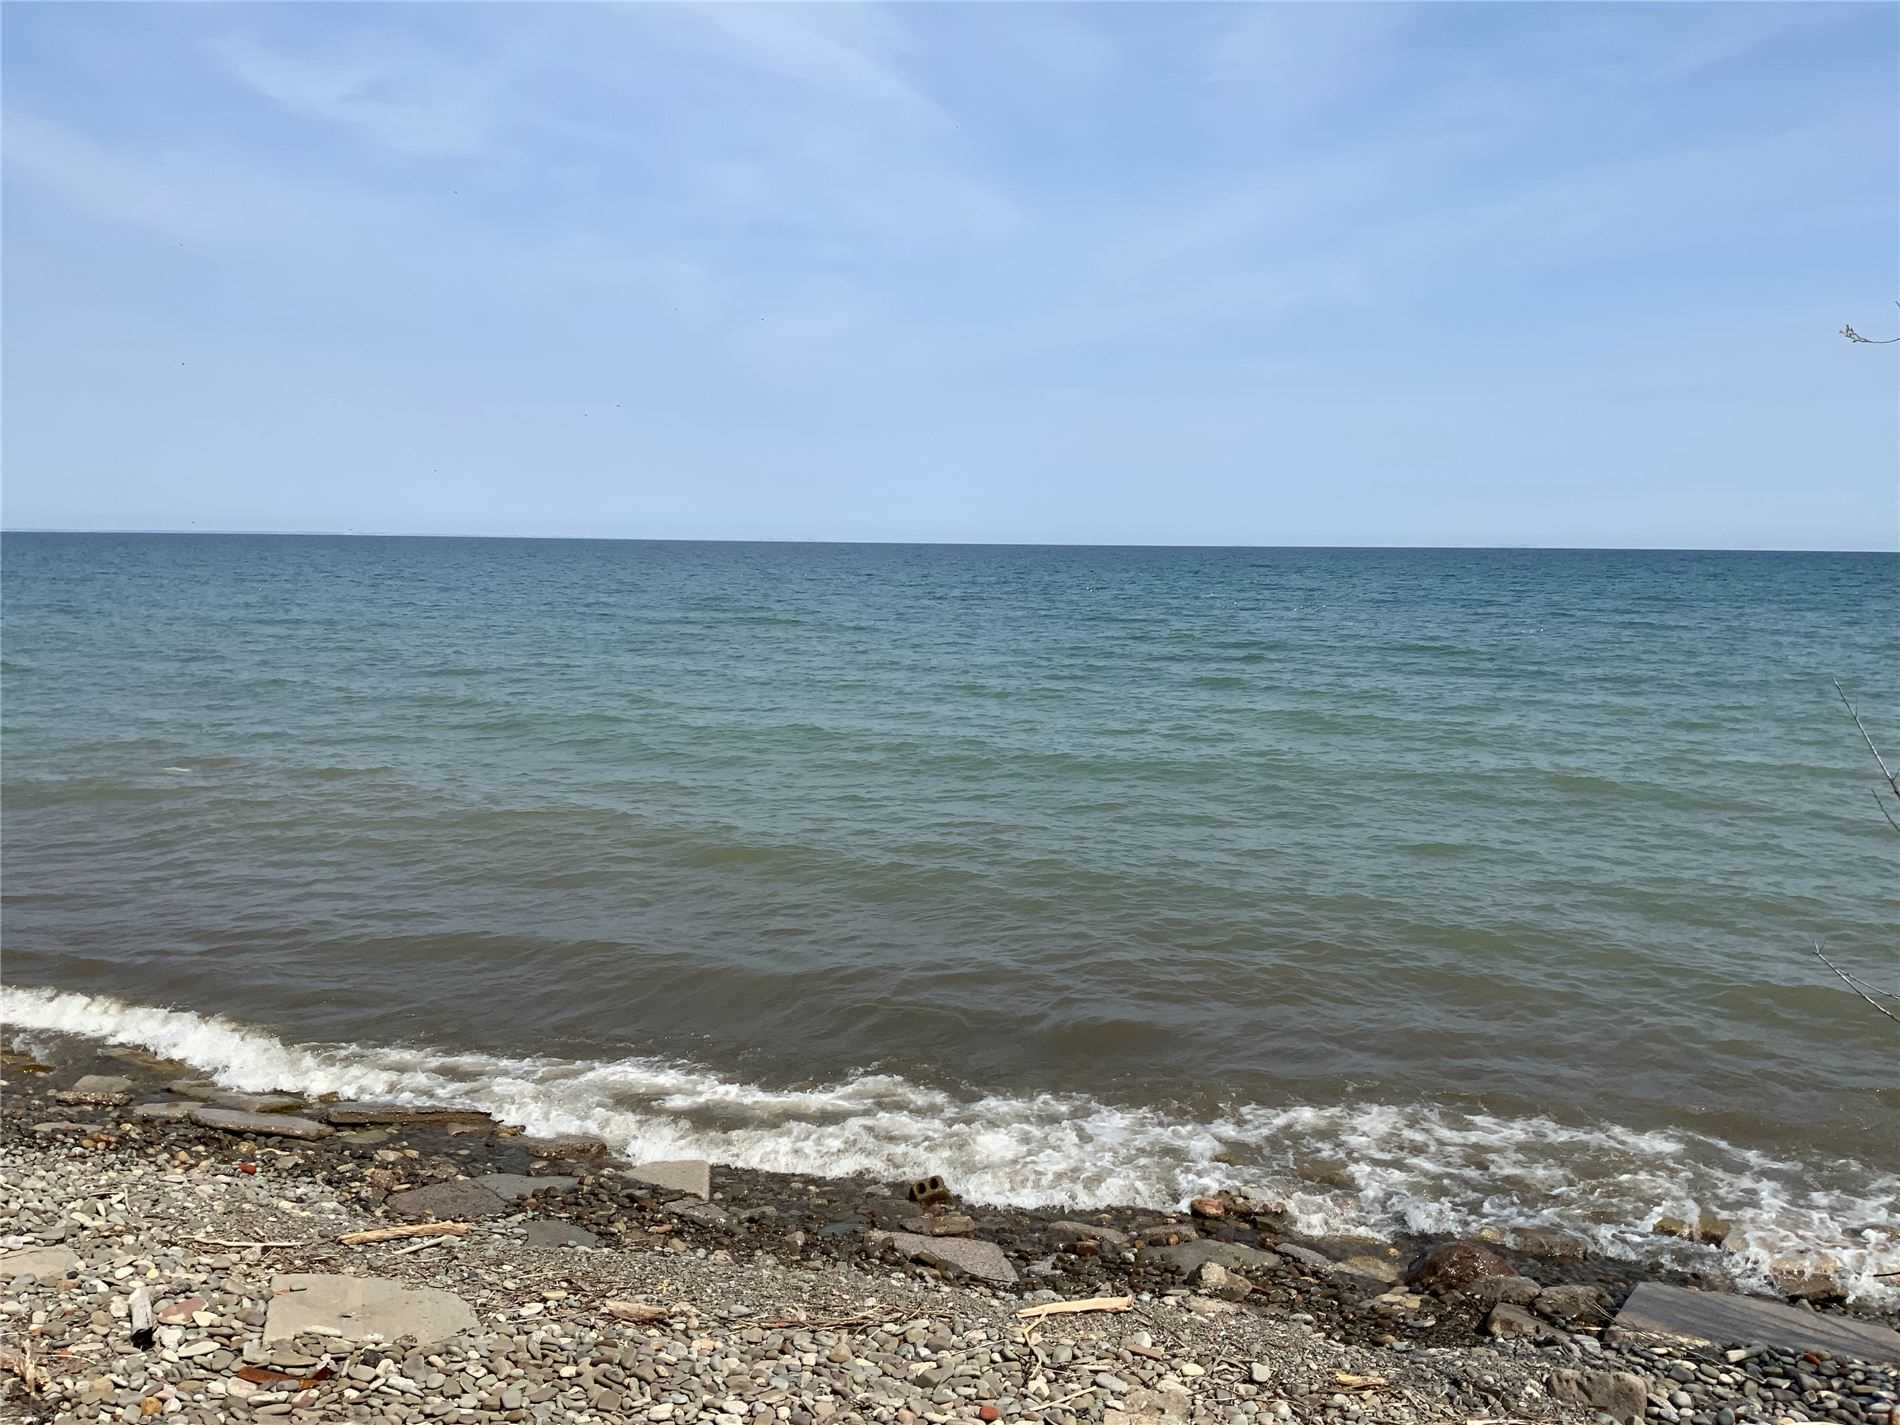 Build Your Dream Home Or Winery On This Lake Ontario Waterfront Lot! This 20 Acre Lot Features A Rolling Landscaped Downwards To Lake Ontario With Approx 143 Feet Of Water Frontage On Lake Ontario. Views Of The Toronto Skyline As Well As Niagara Escarpment! The Severed Lot Will Have 2 Entrances To The Property. Excess Acreage Are Cleared Fertile Lands Ready For The New Plantings Or Wedding Venue! Seller Will Sever Property At Their Own Expense.